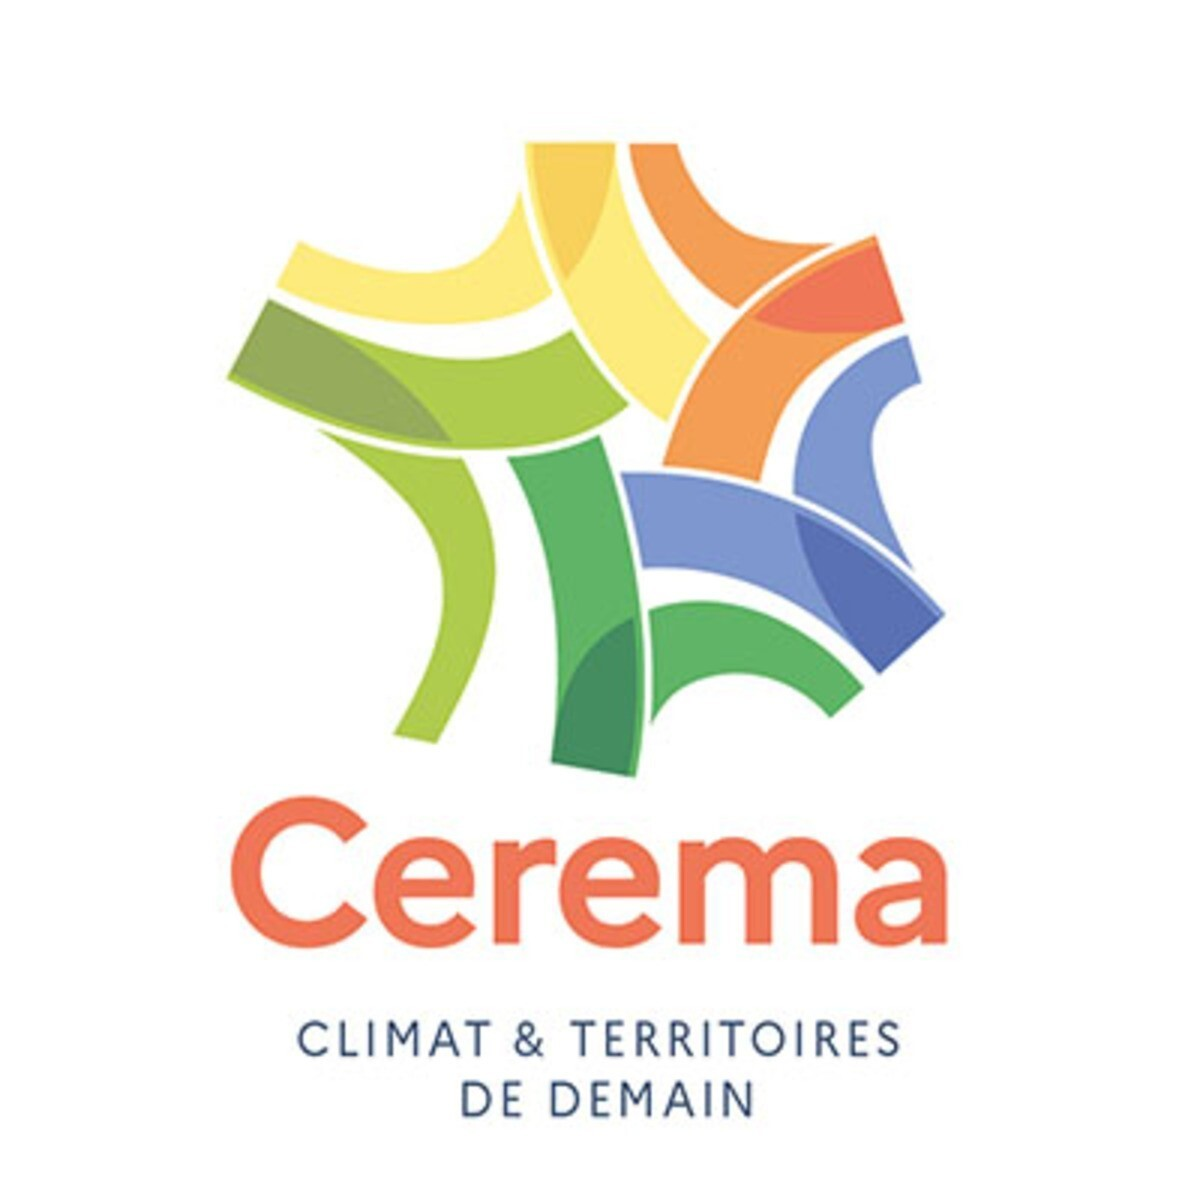 Cerema Communication